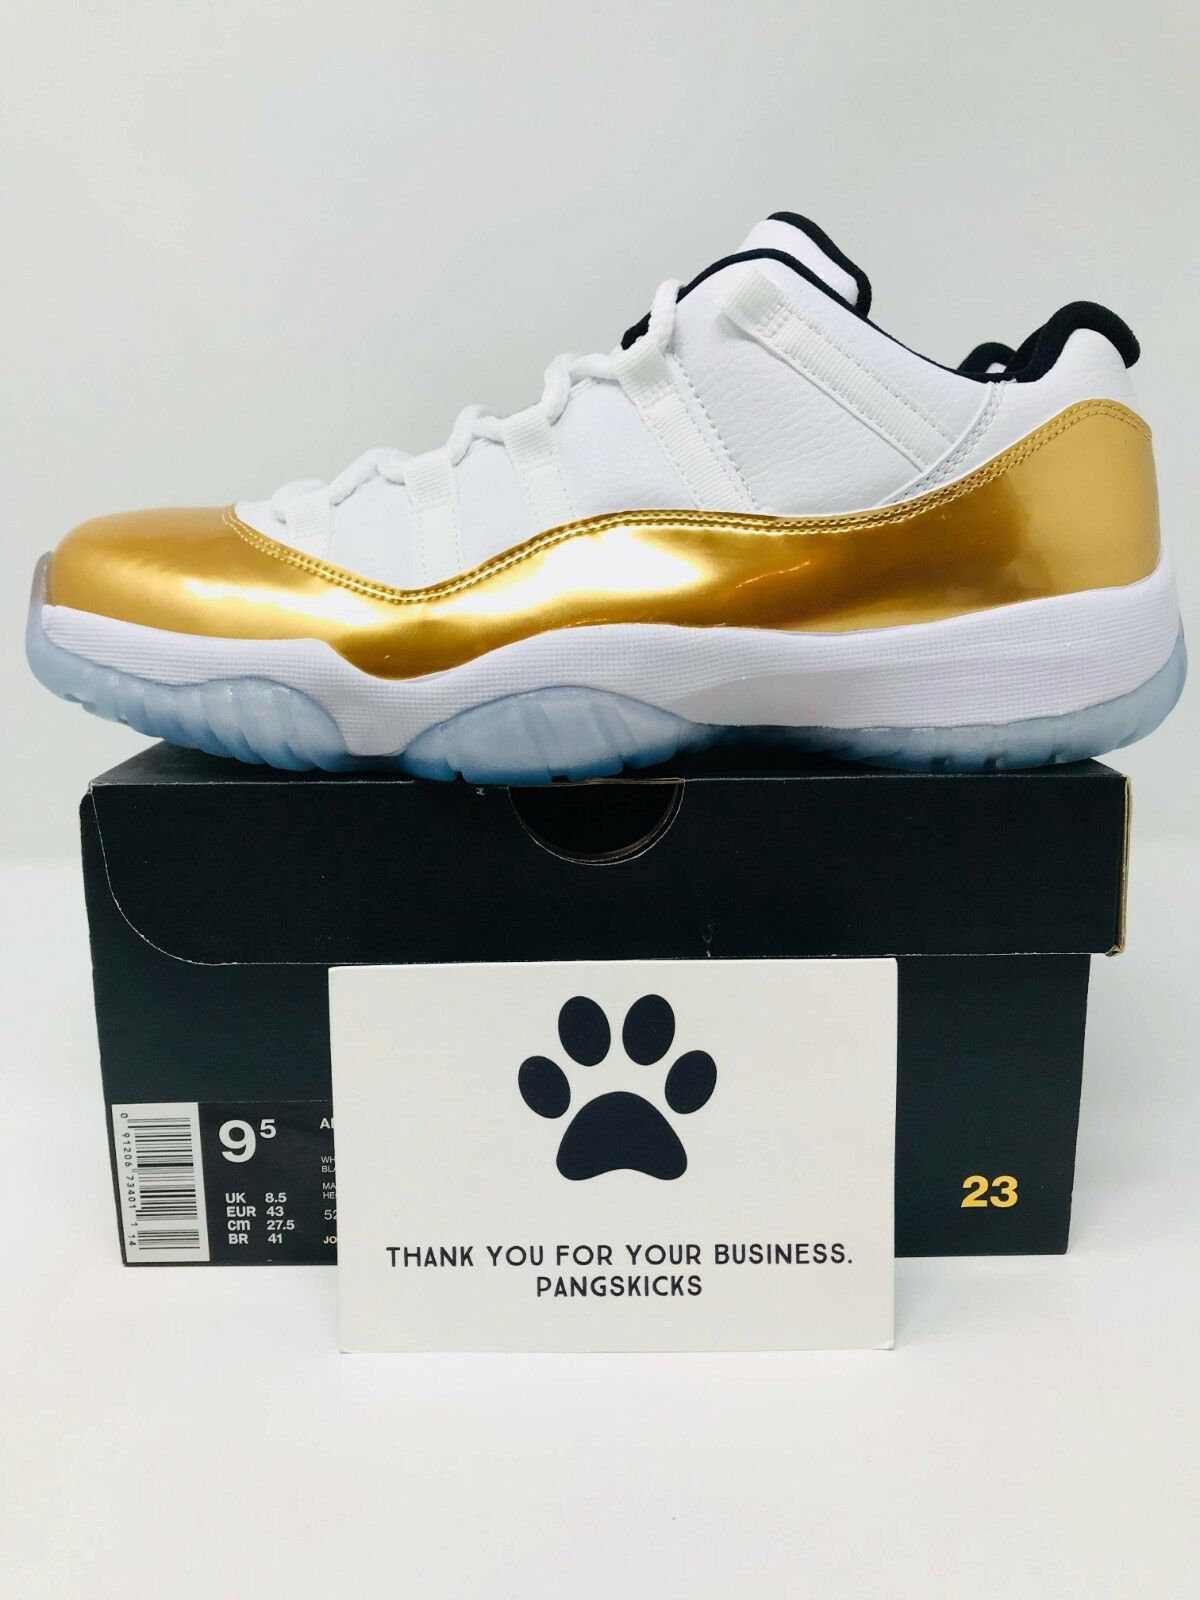 Nike Air Jordan 11 Retro Low Closing Ceremony White gold 528895-103 Size 9.5